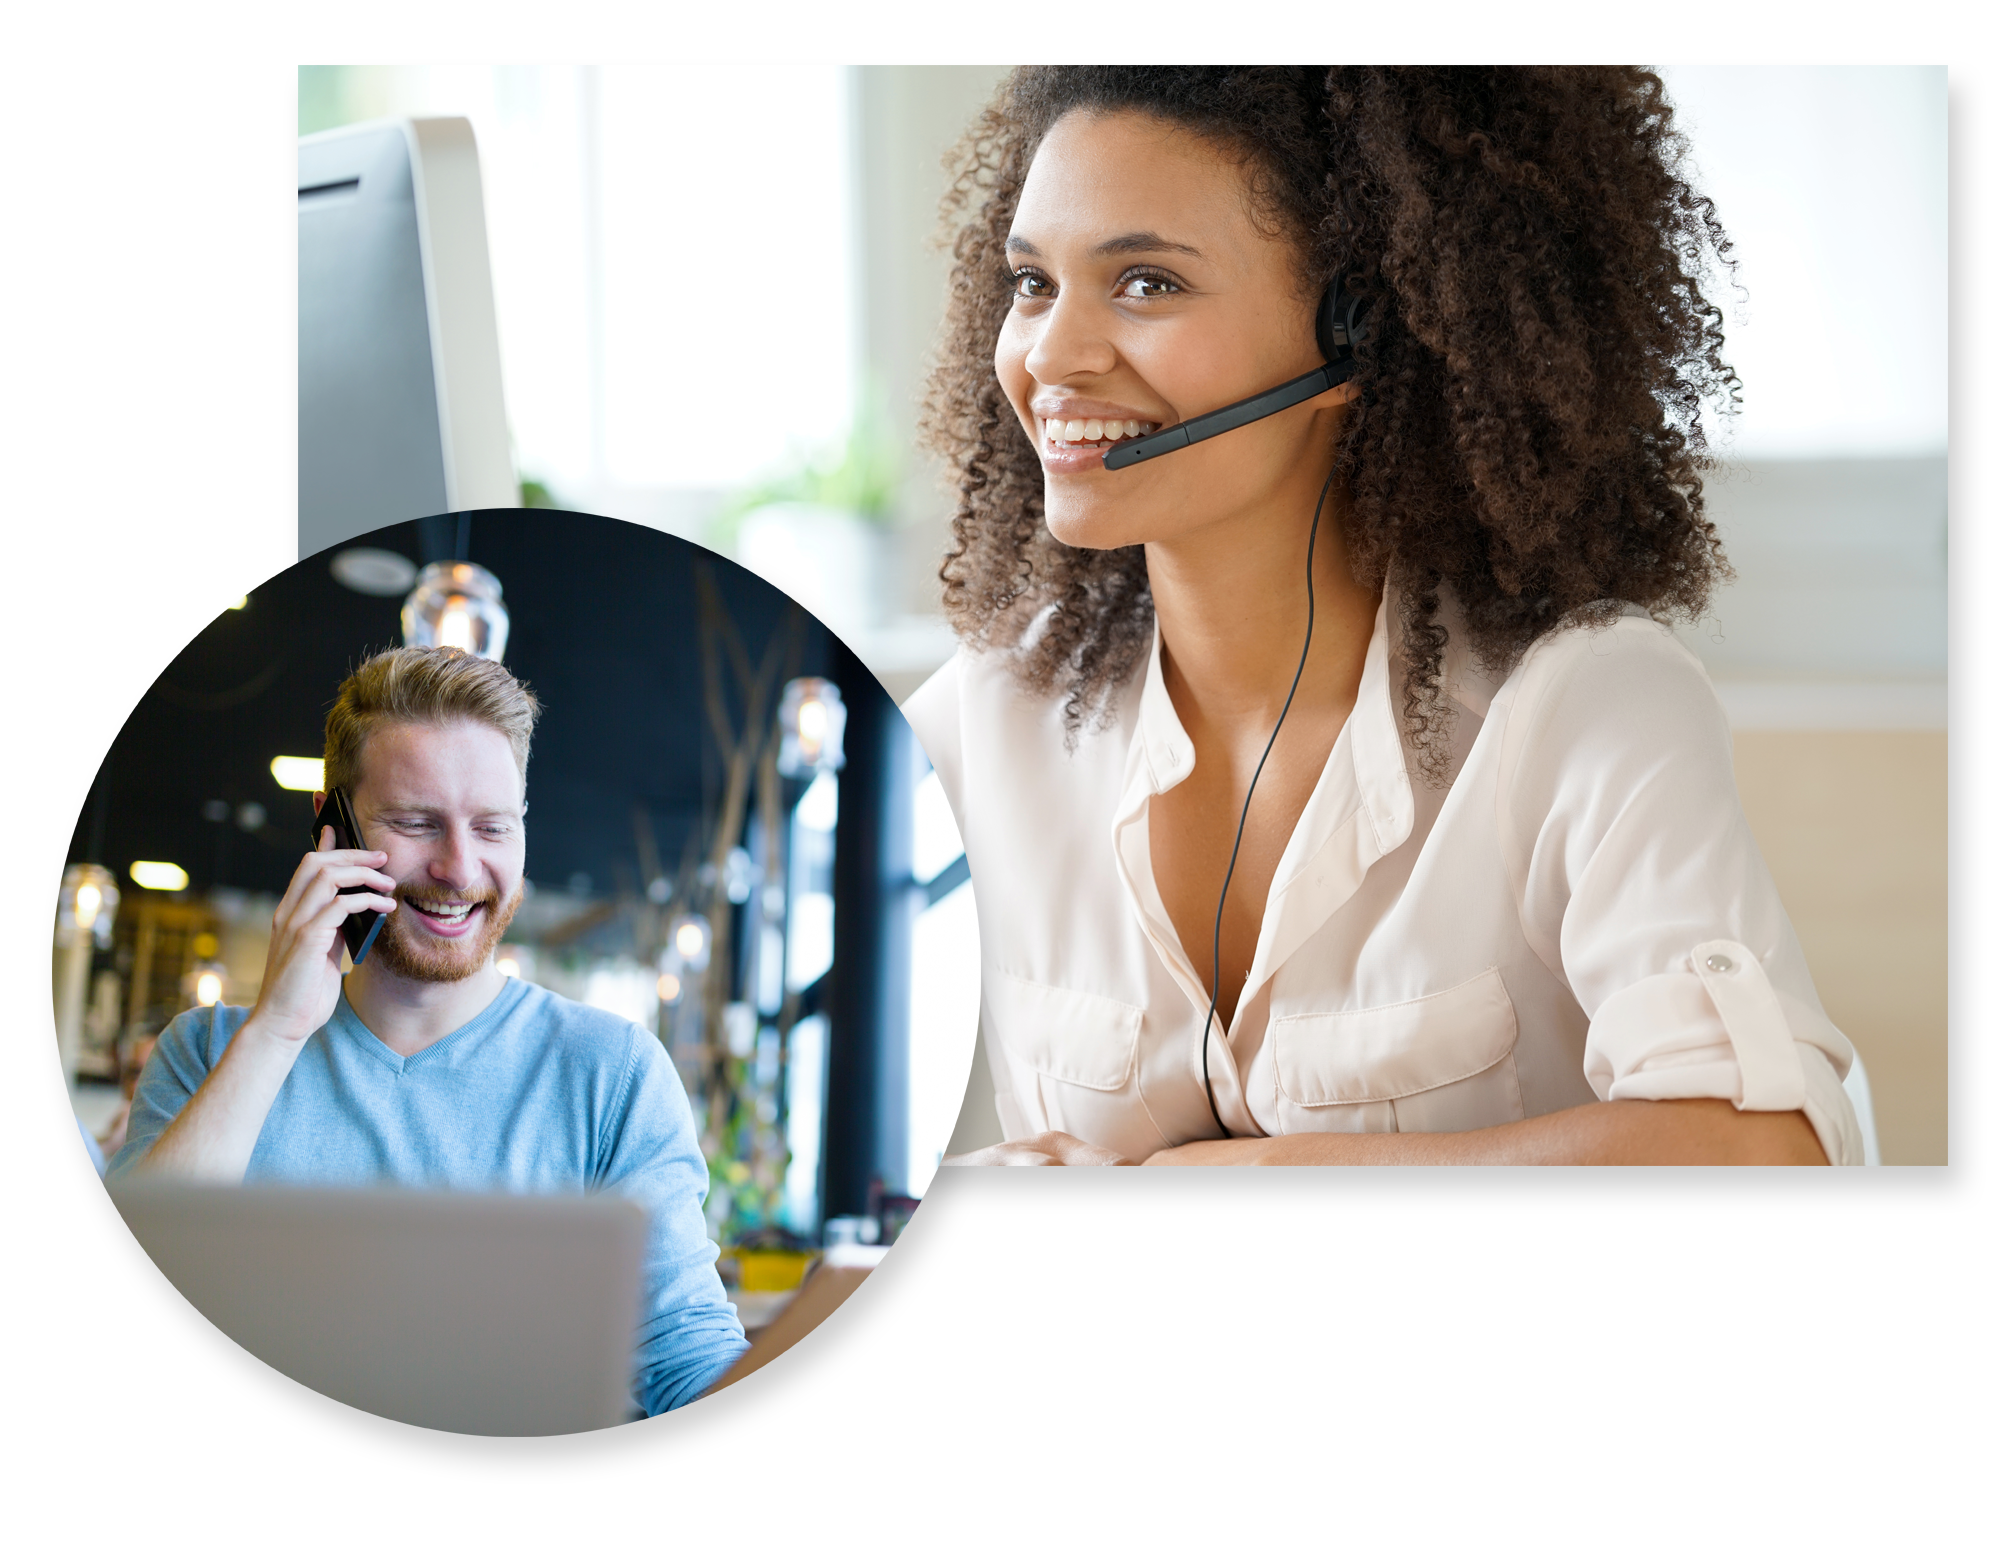 Give us a ring. - Interested in Sales Partnership opportunities? Just pick up the phone to chat with a member of our sales partnership team members.